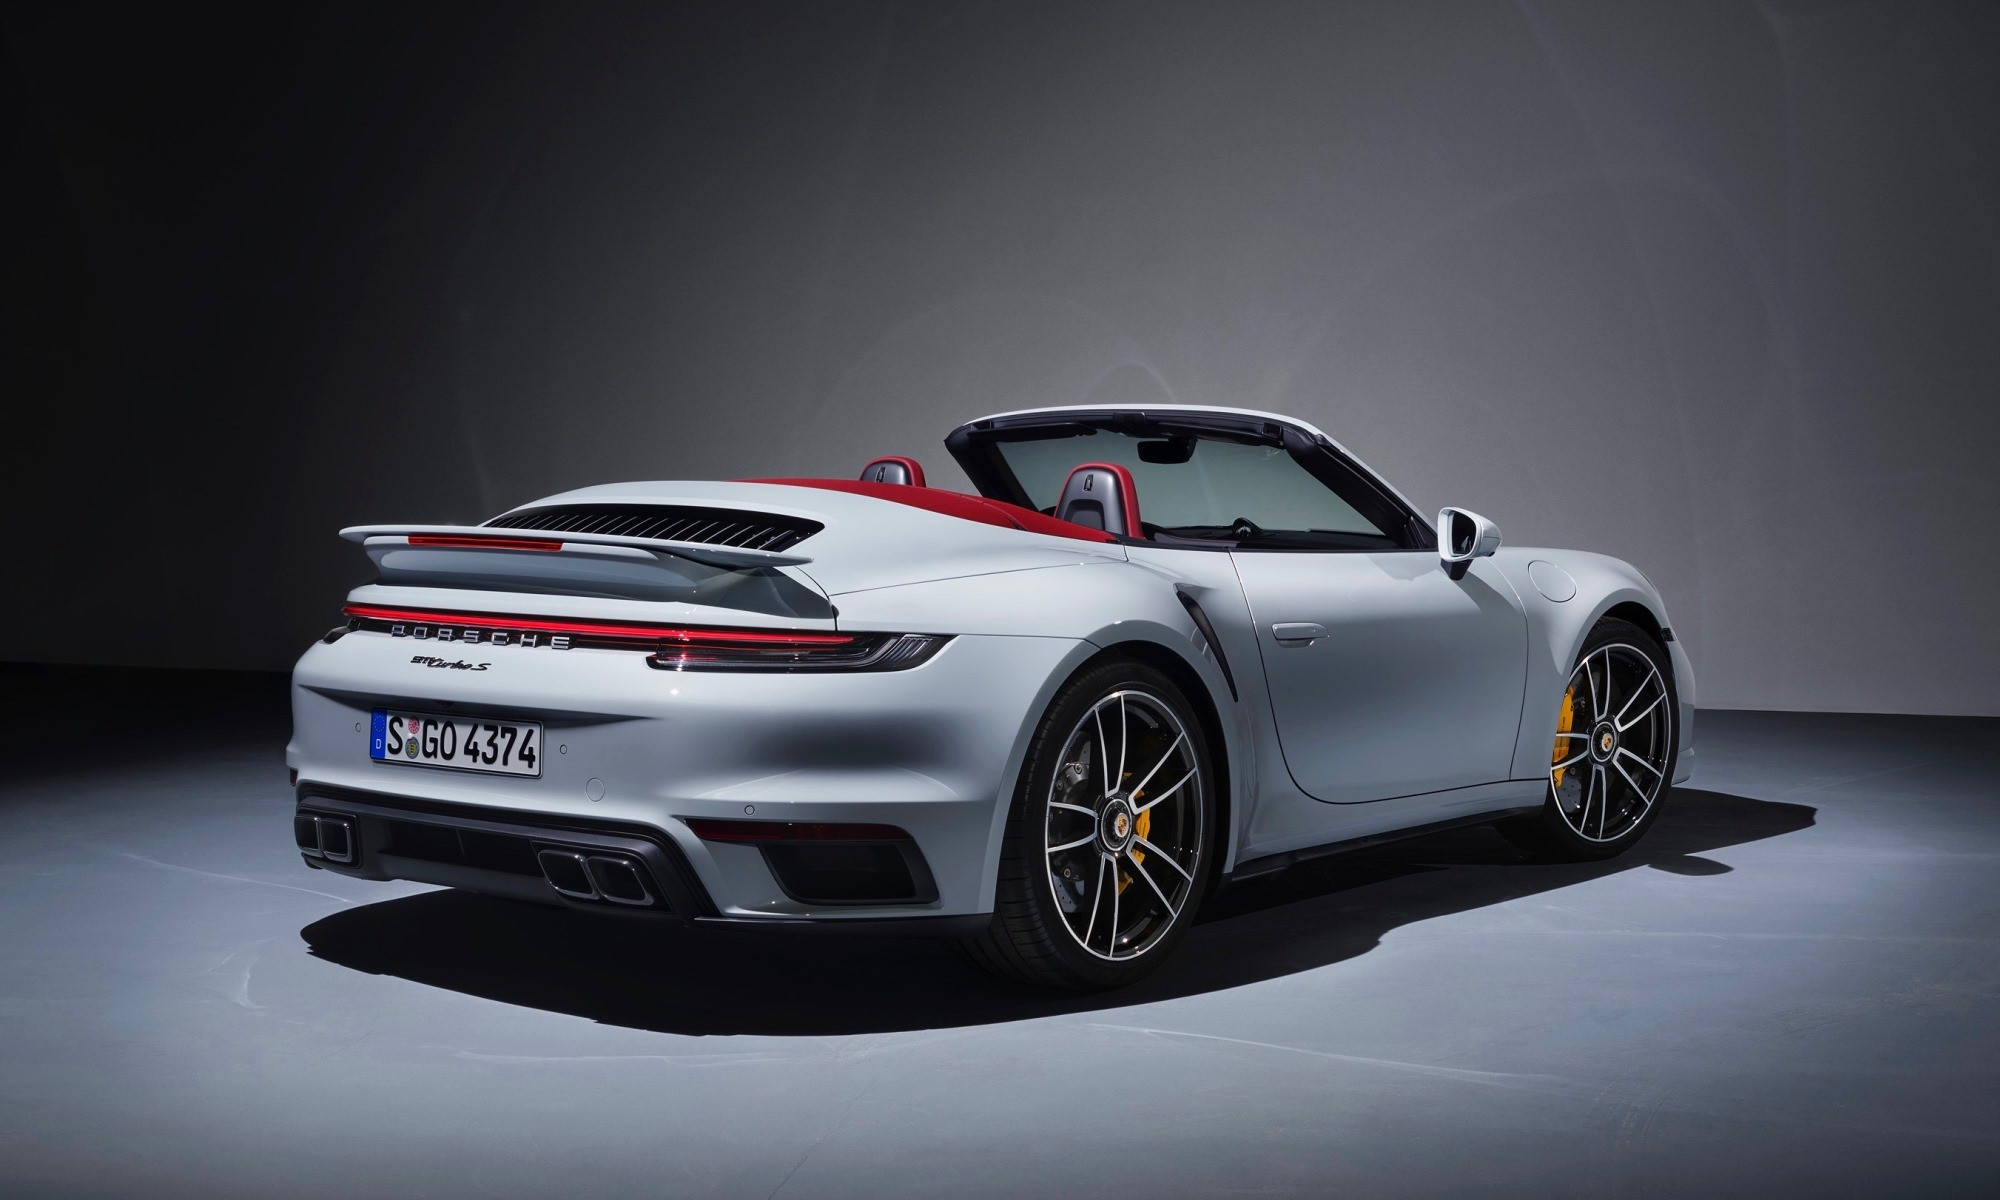 New Porsche 911 Turbo S cabriolet